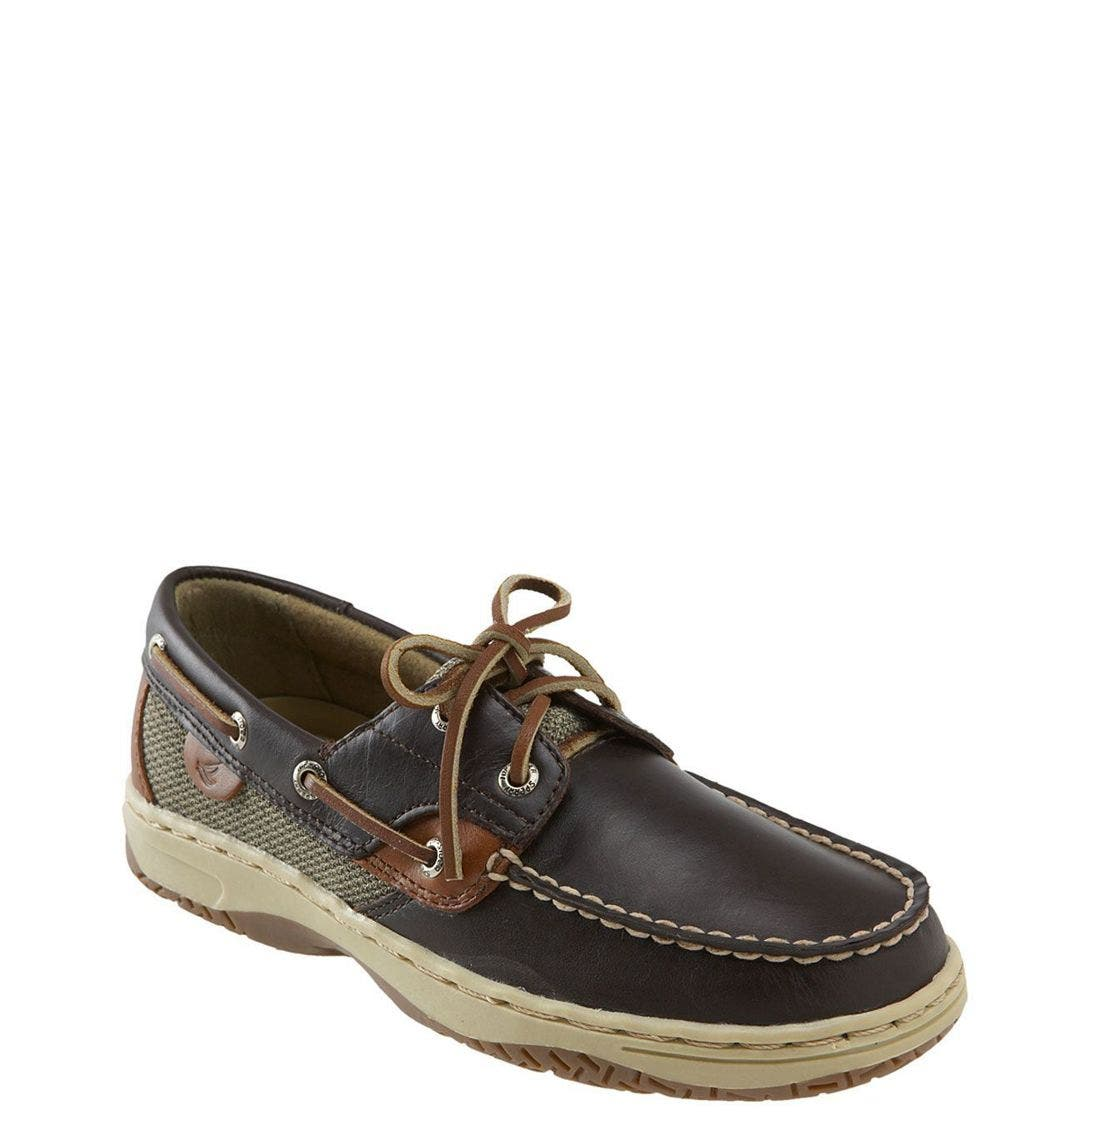 Alternate Image 1 Selected - Sperry Kids 'Bluefish' Boat Shoe (Walker, Toddler, Little Kid & Big Kid)